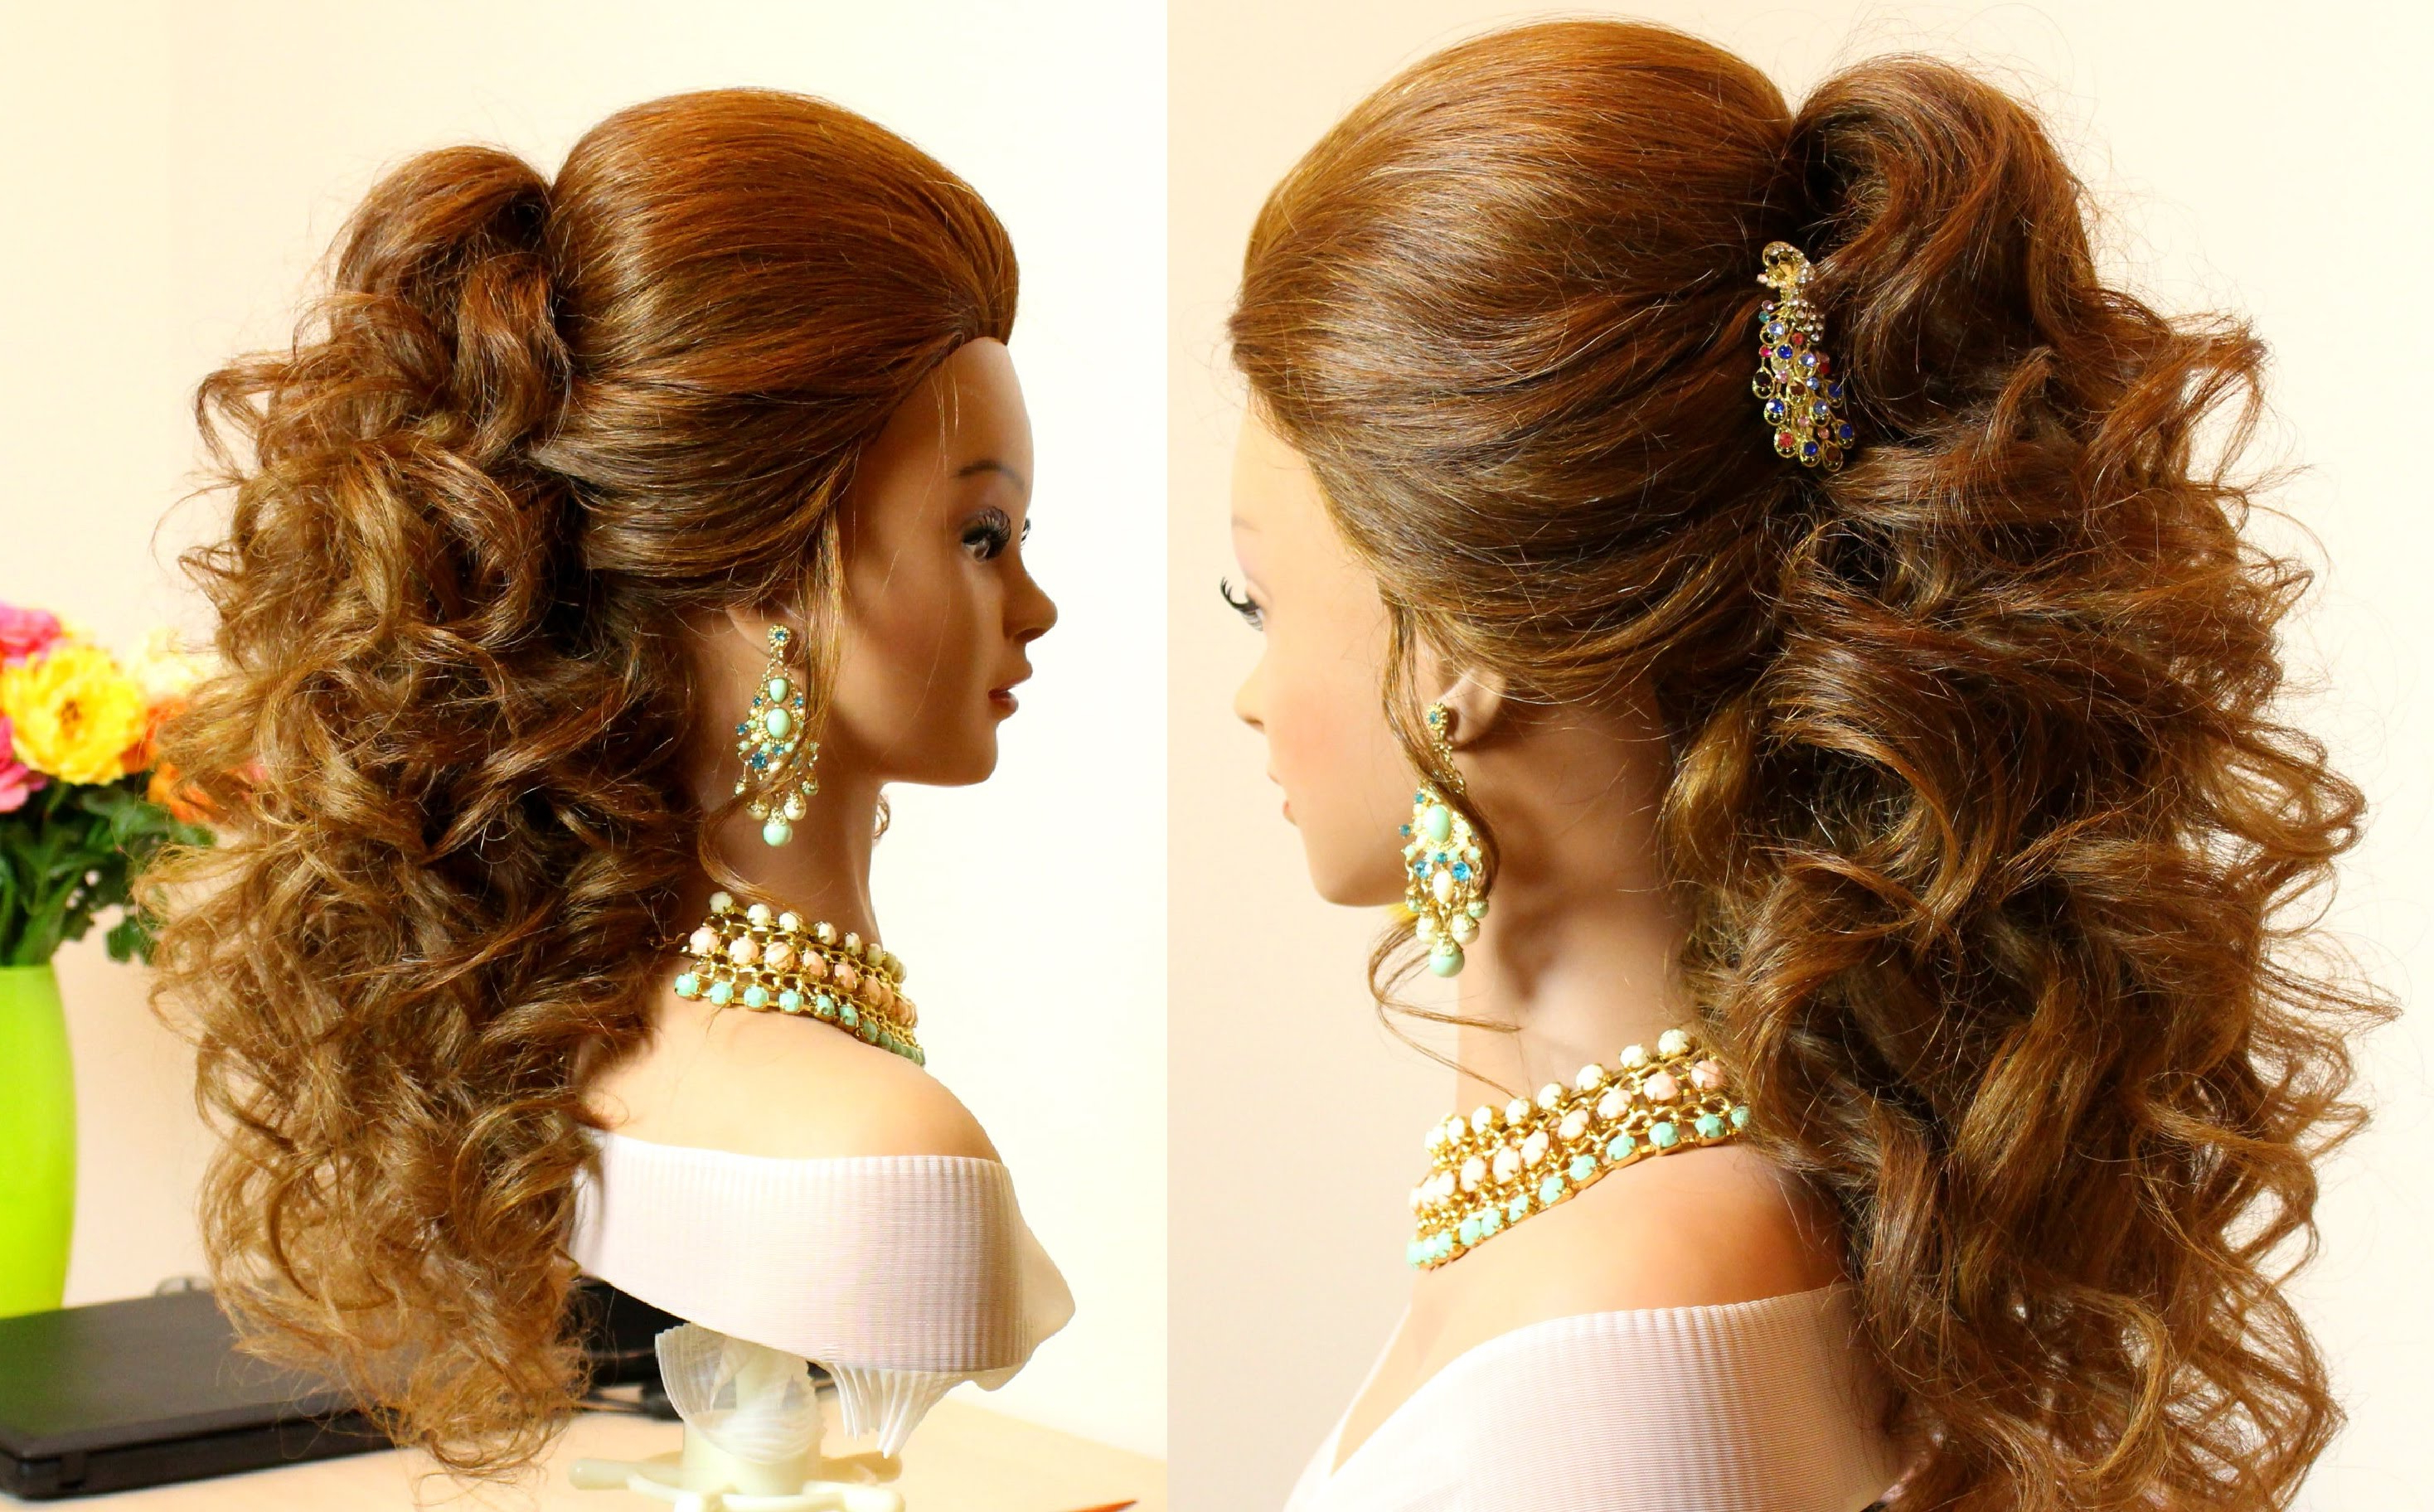 21 Amazing Styles That You Can Do With Your Long Curly Hair – My In Recent Curled Floral Prom Updos (View 12 of 20)